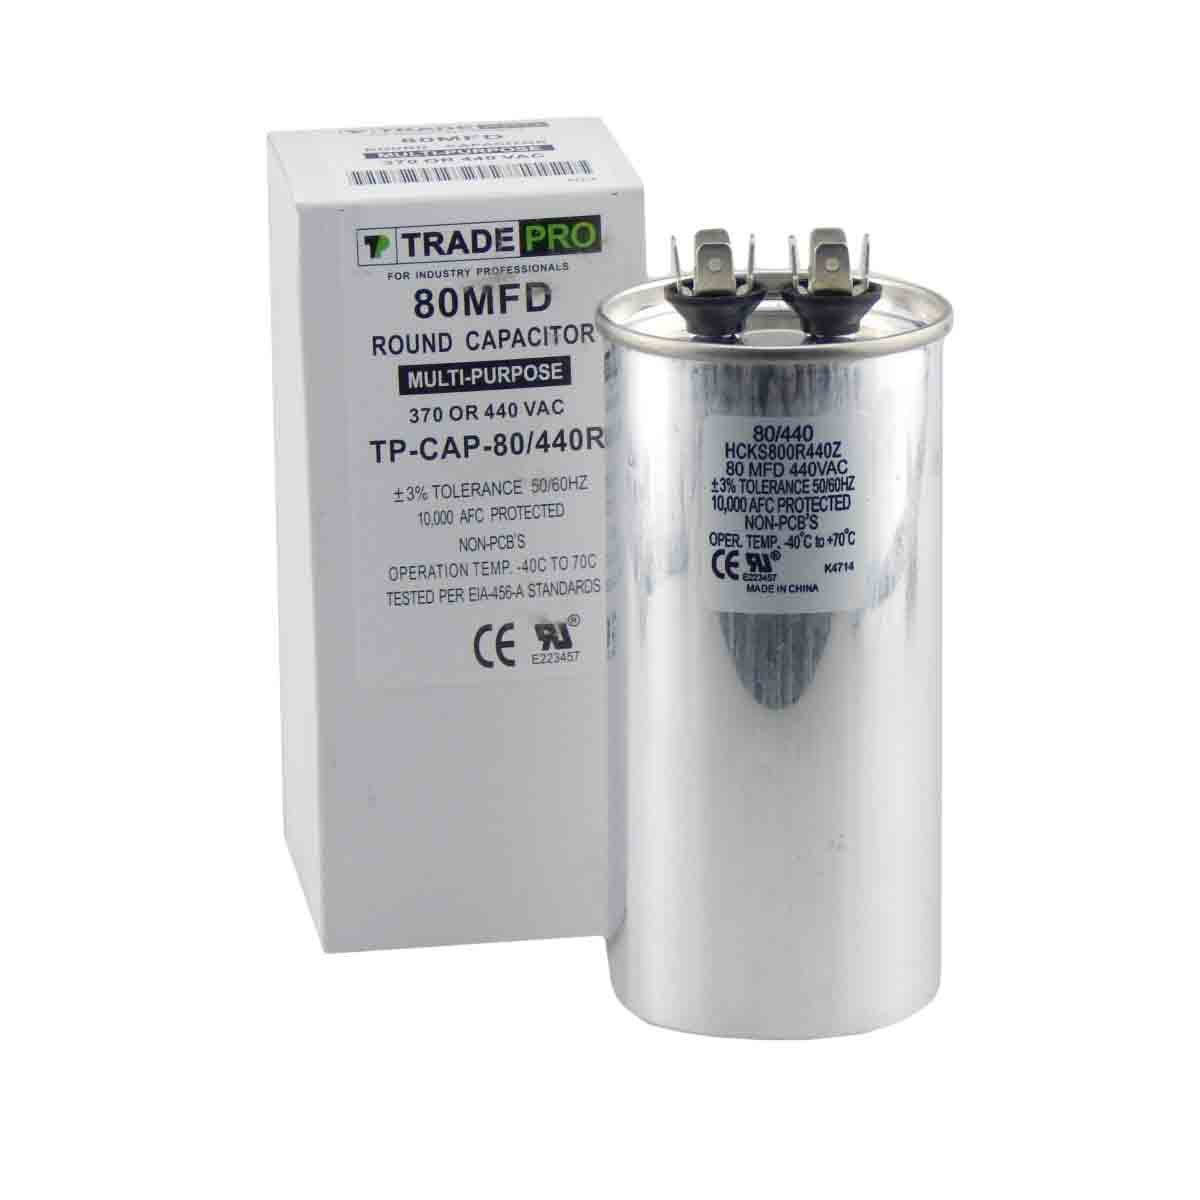 80 mfd Capacitor, Industrial Grade Replacement for Central Air-Conditioners, Heat Pumps, Condensers, and Compressors. Round Multi-Purpose 370/440 Volt - by Trade Pro TradePro